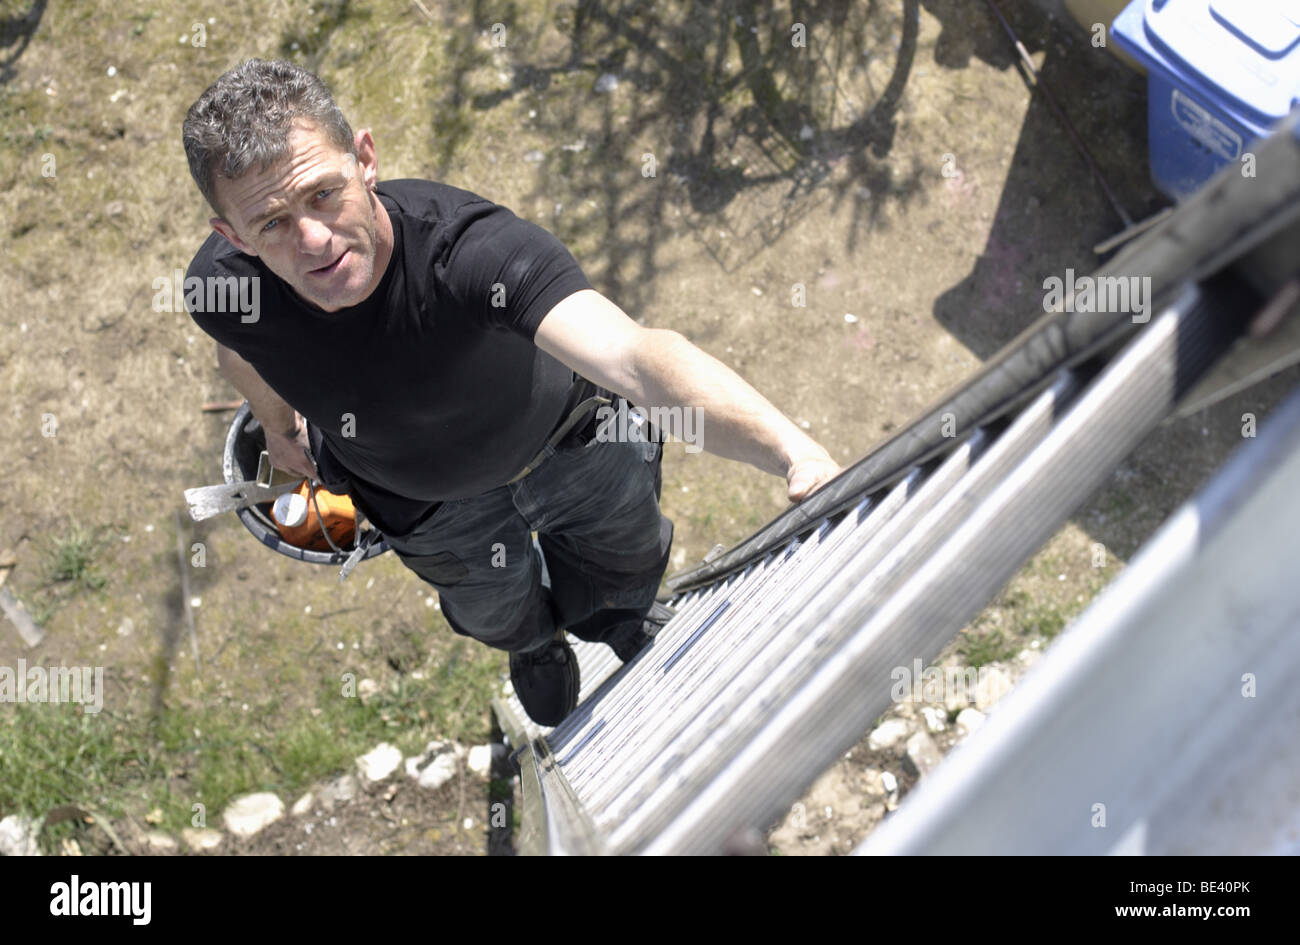 A SLATER CLIMBING ON A  ROOF. - Stock Image